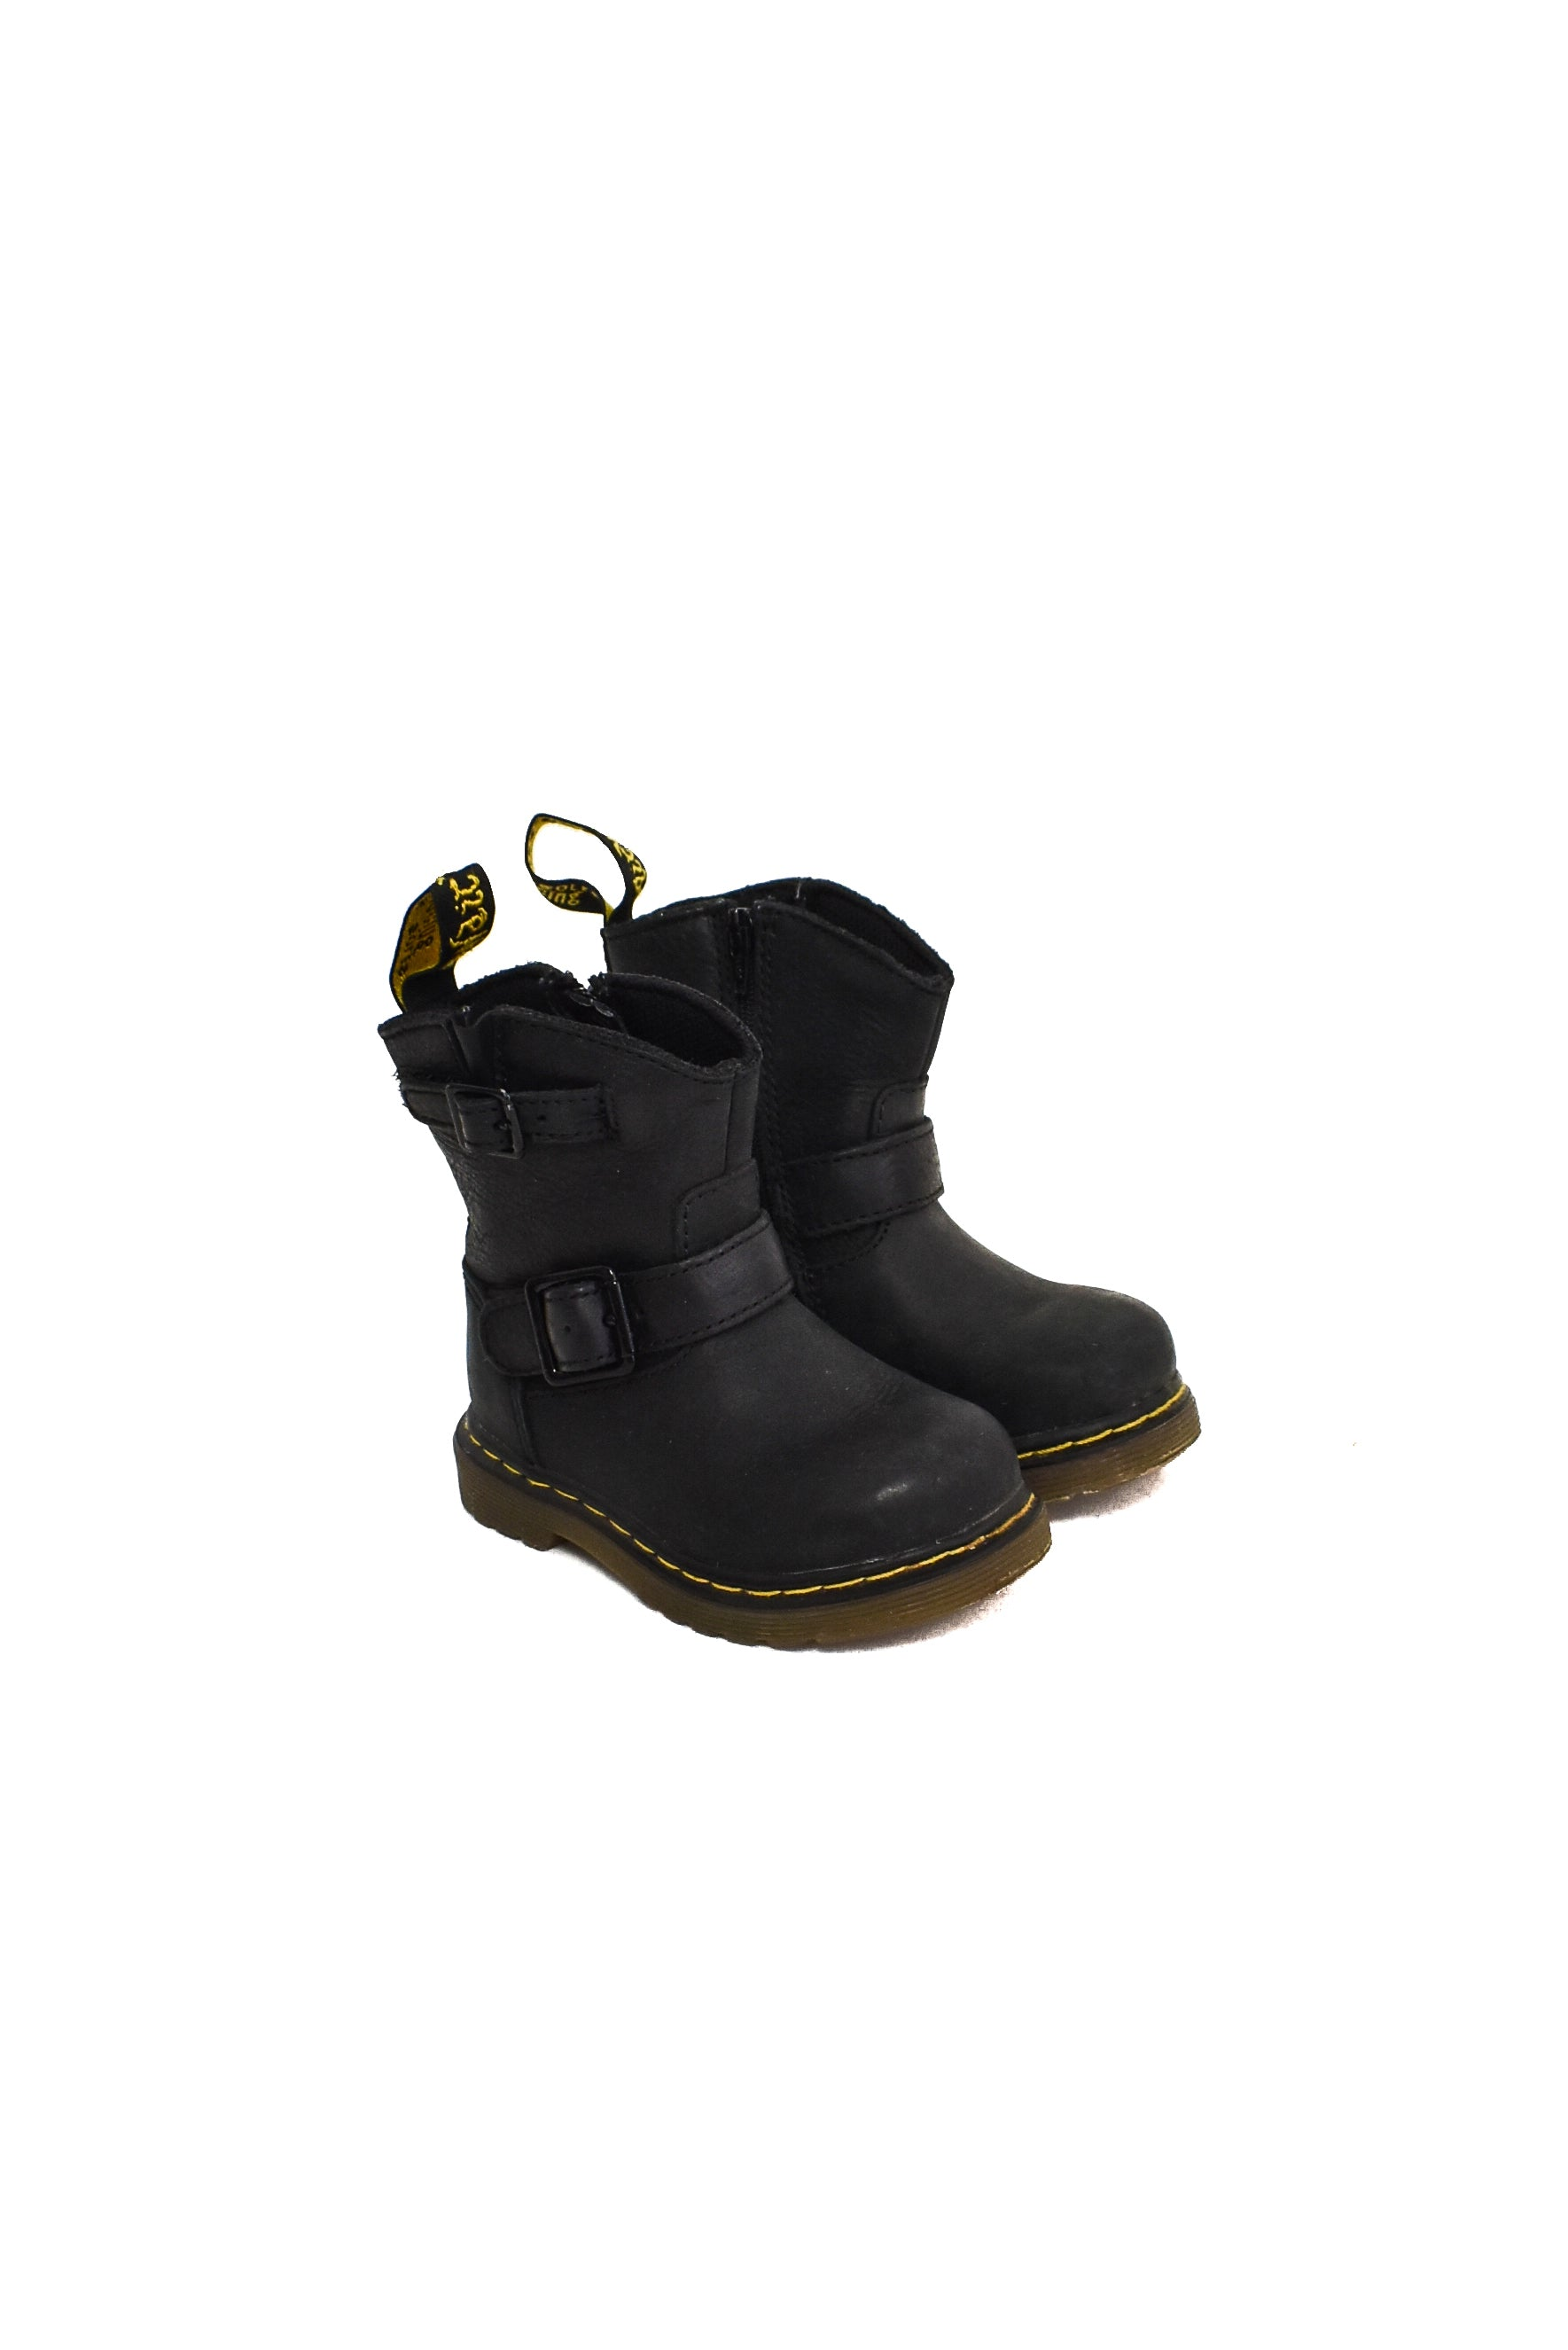 10007612 Dr. Martens Baby~Boots 18-24M (UK 5) at Retykle